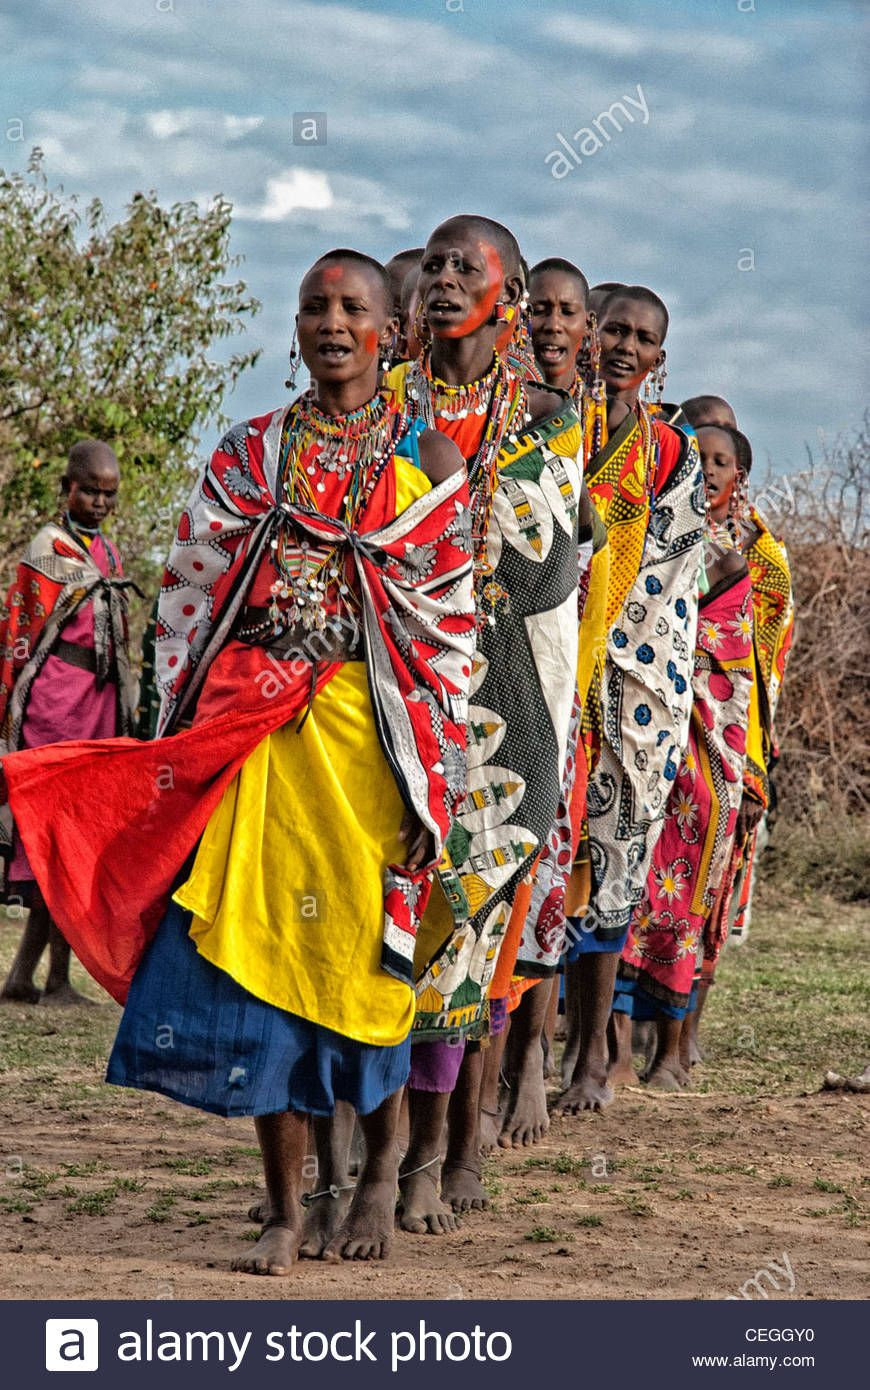 Masai Women In A Line Singing And Doing A Welcome Dance Masai - Maasai tribe wild animals attend wedding kenya